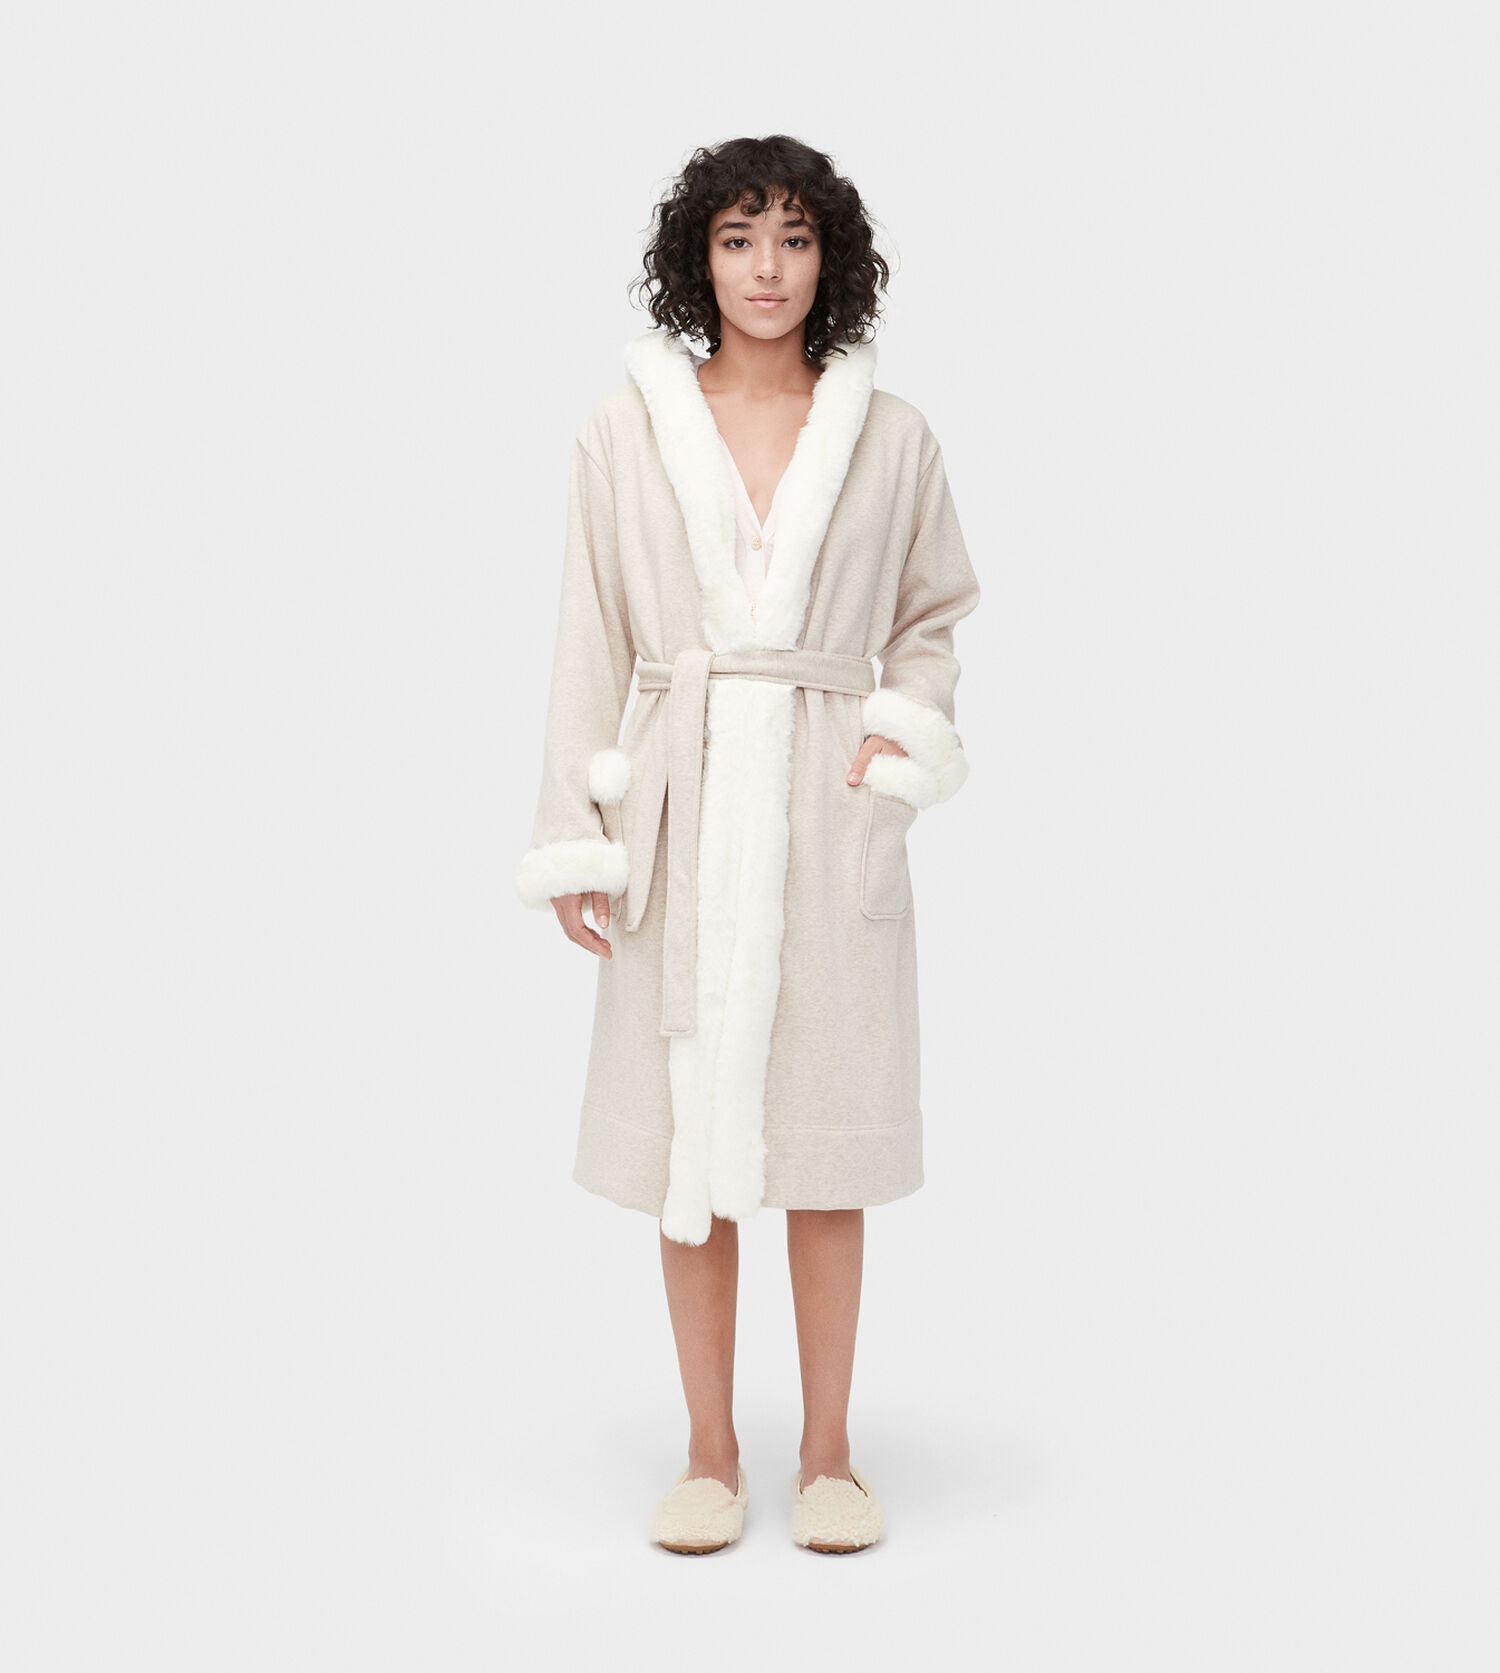 Zoom Duffield Deluxe II Robe - Image 1 of 4 ca2a9536e